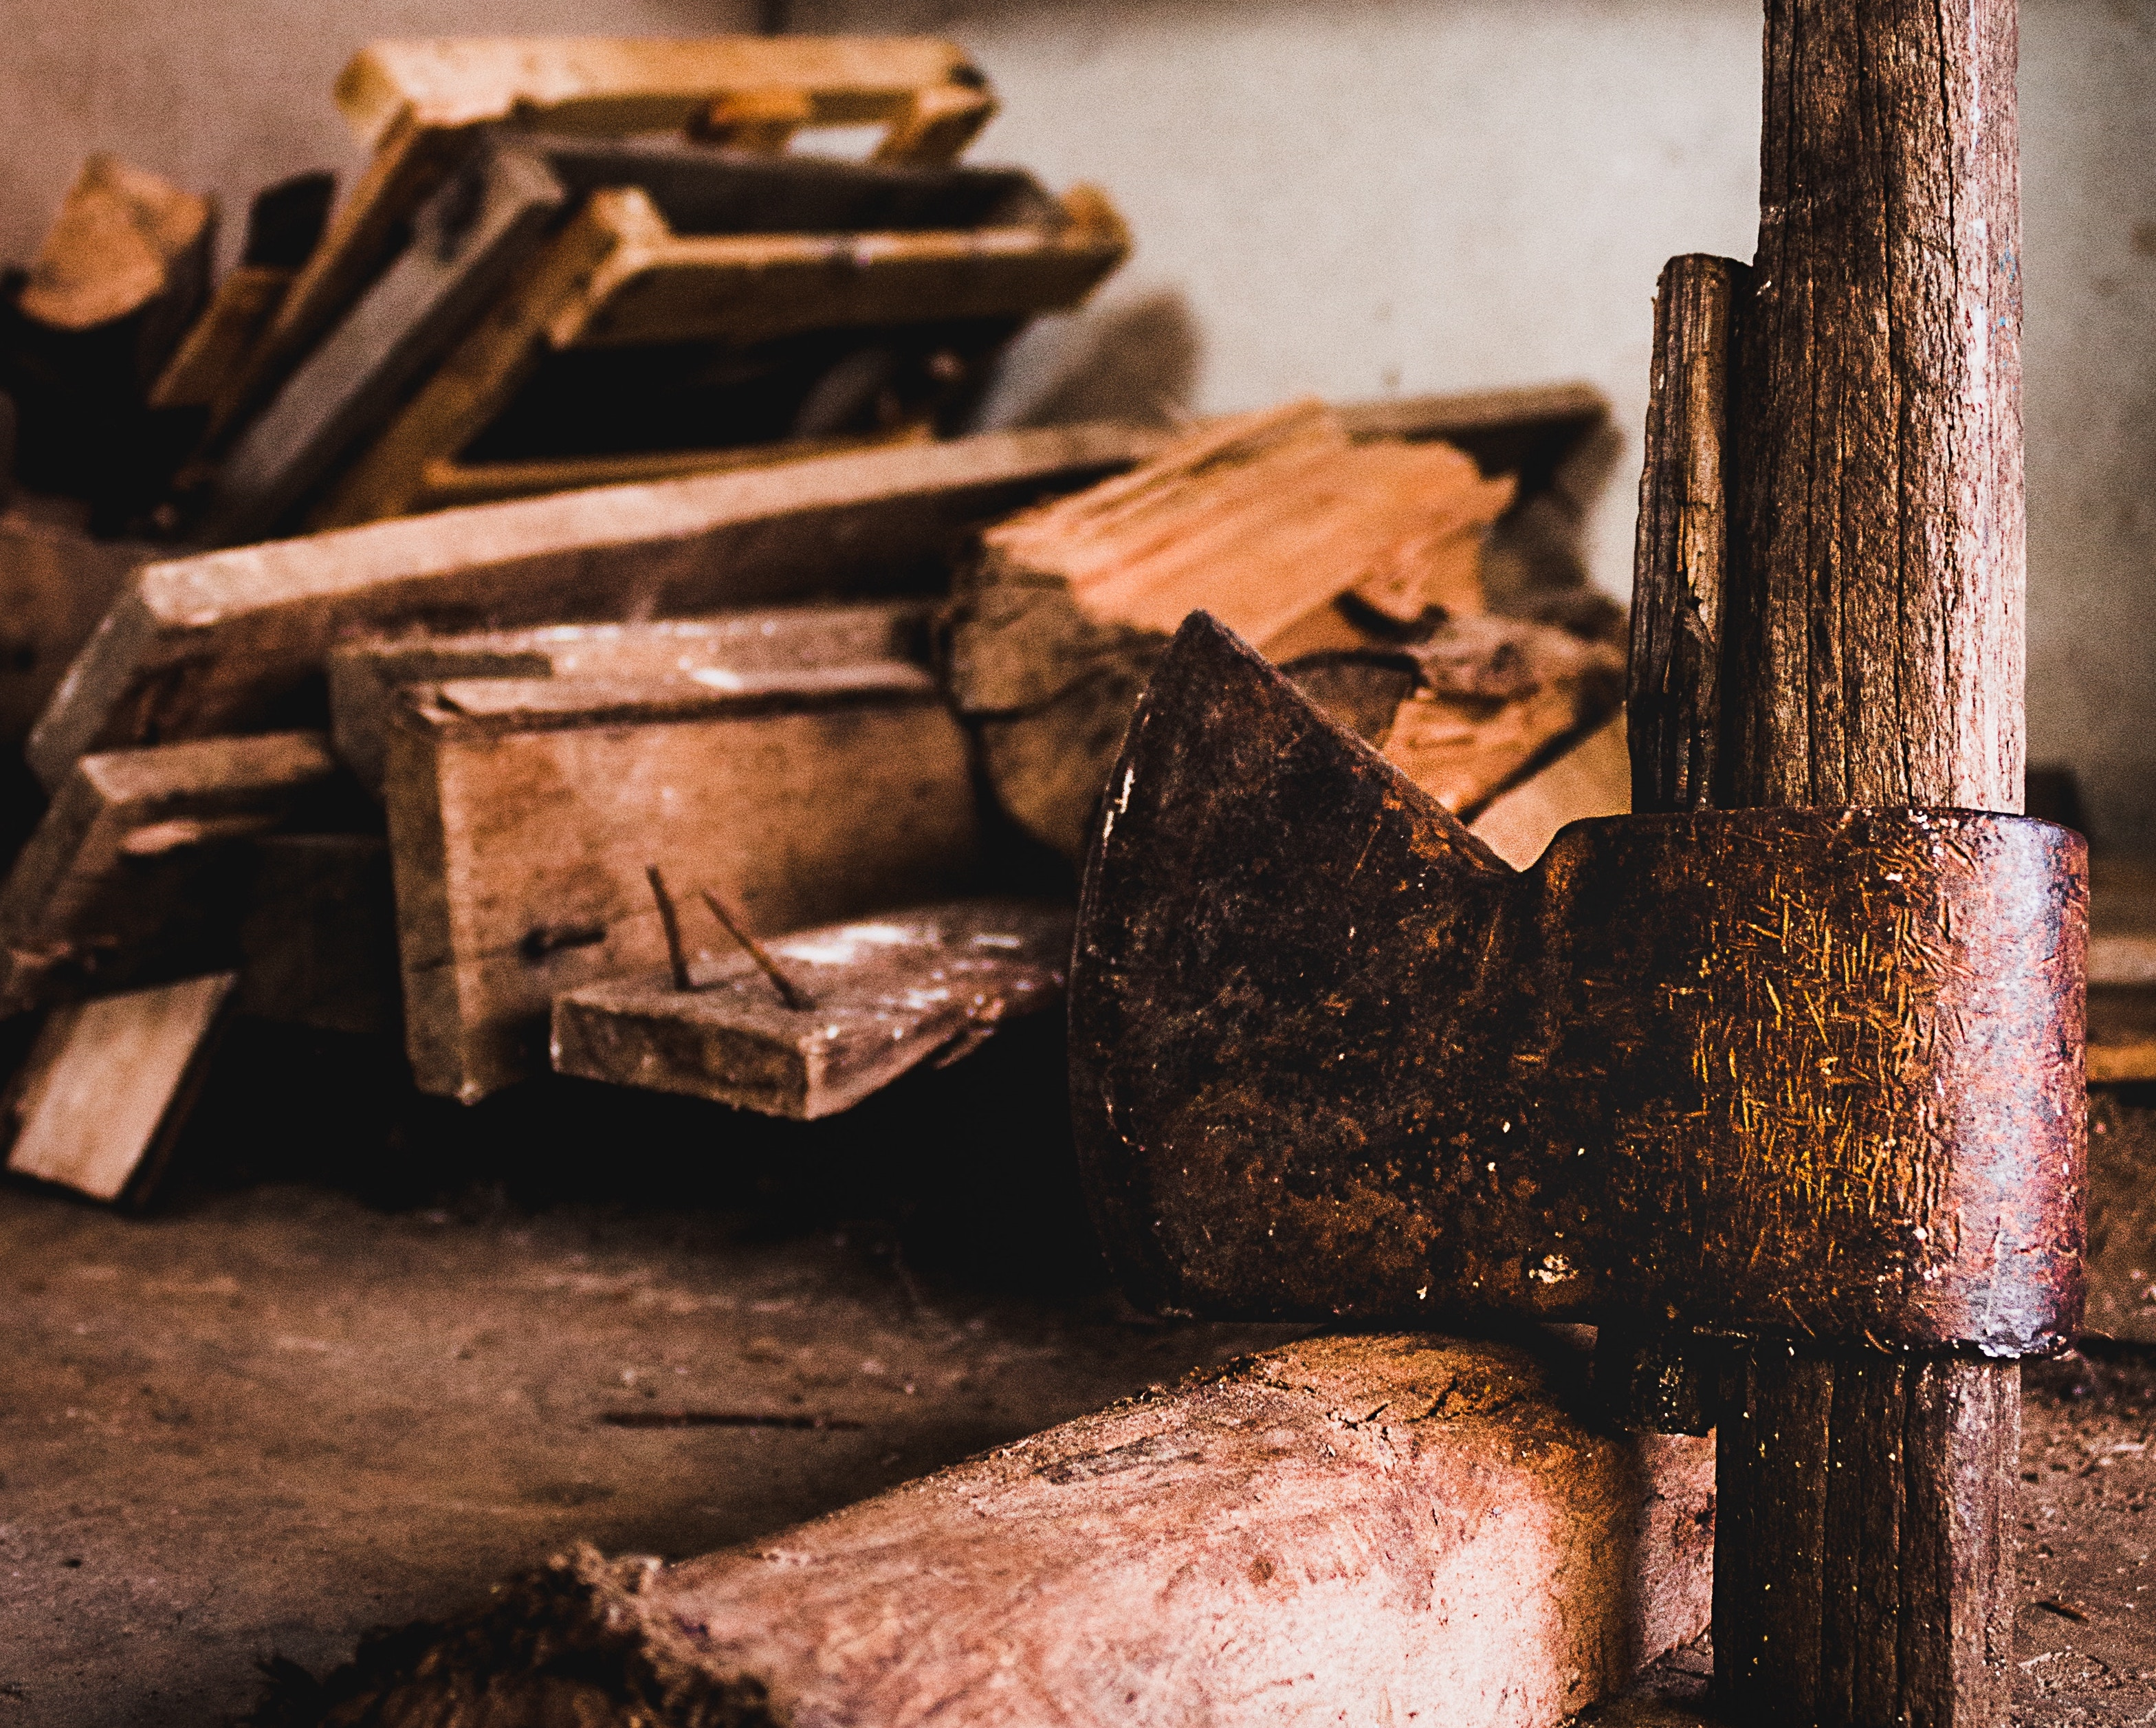 Splinters, Beams, and the Christian Woodchopping Industry